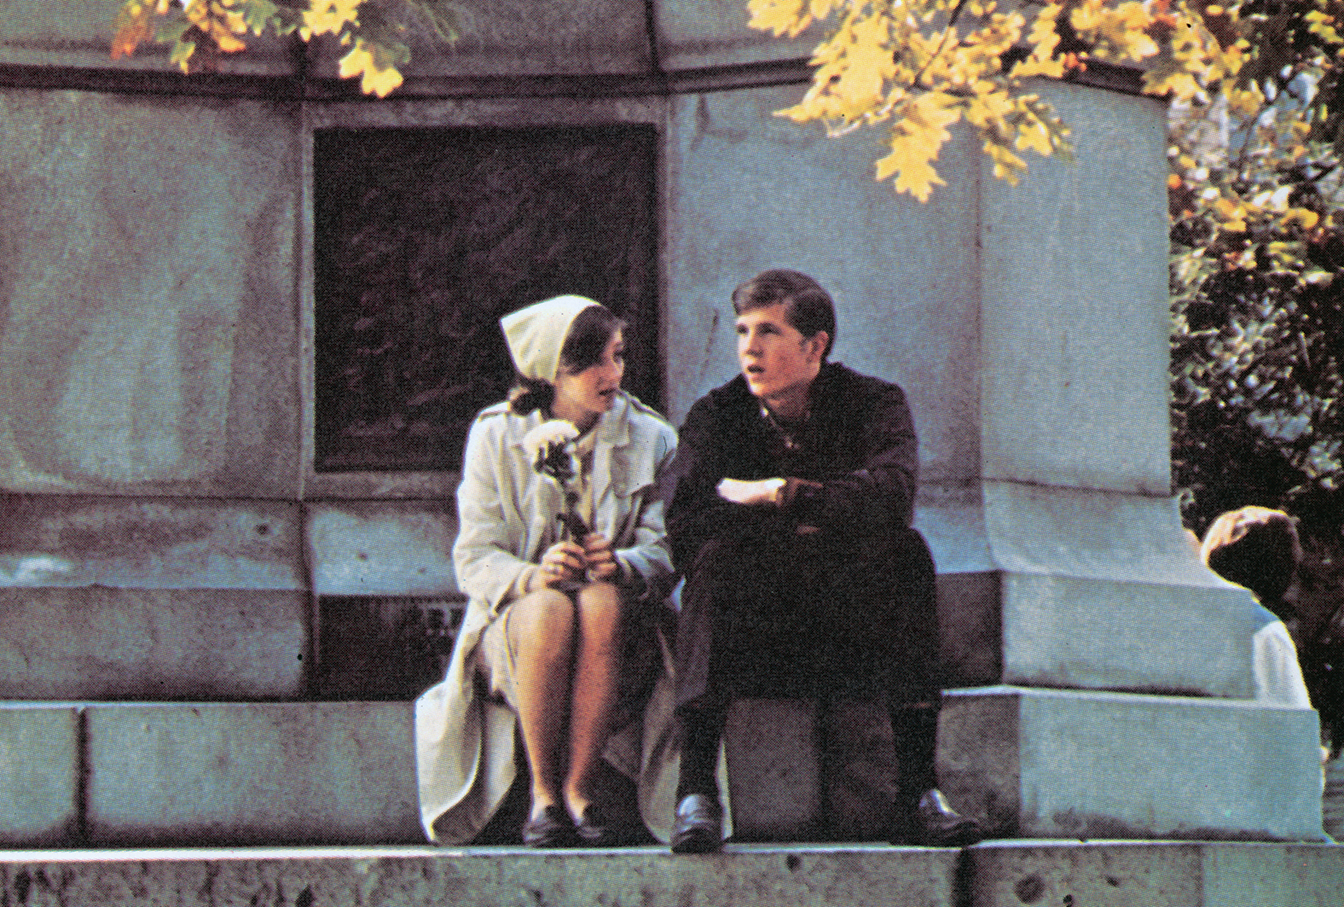 A pair of students connect at the Soldiers and Sailors Civil War Memorial on College Green, 1968 Athena yearbook. Photo courtesy of the Mahn Center for Archives & Special Collections